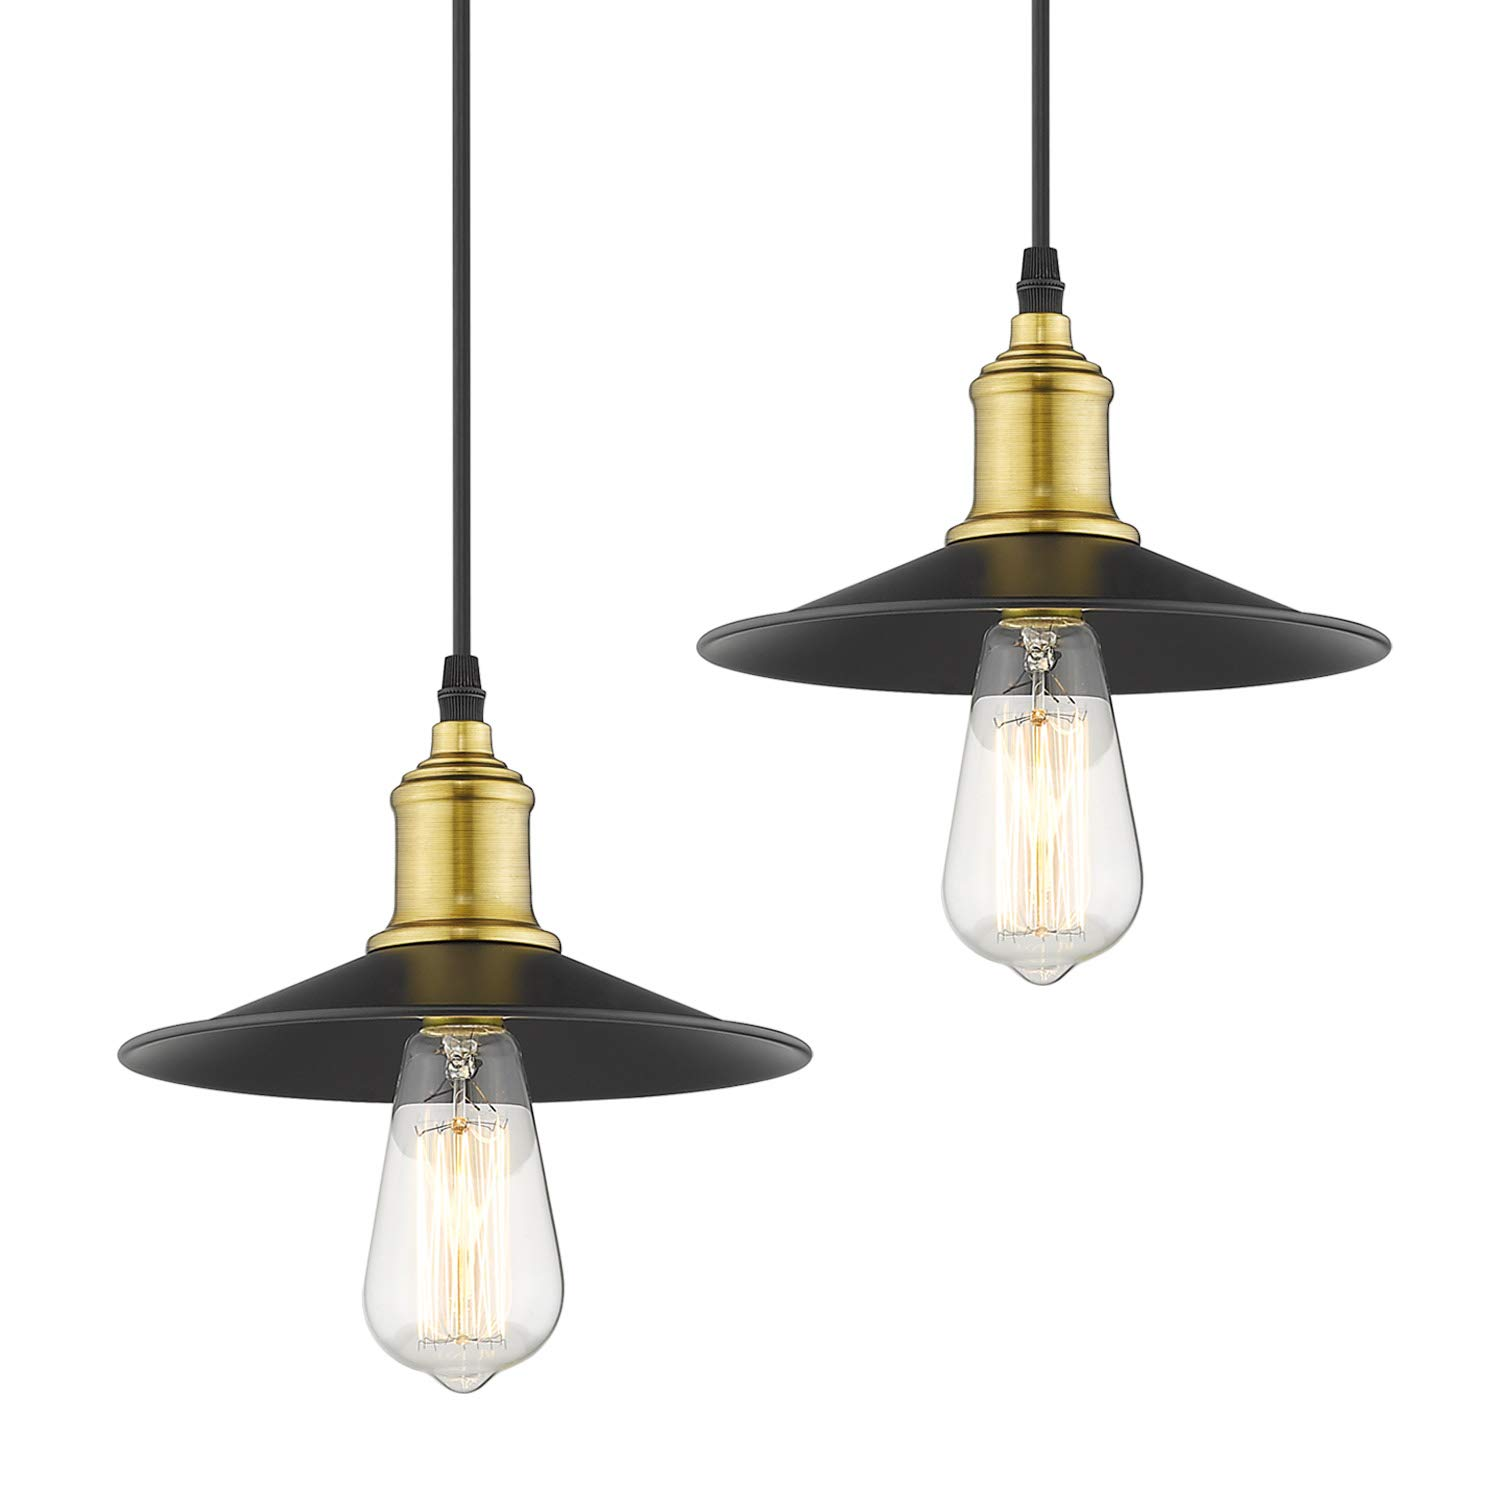 Jazava industrial pendant lighting mini adjustable hanging light fixture 2 pack for farmhouse antique brass black finish